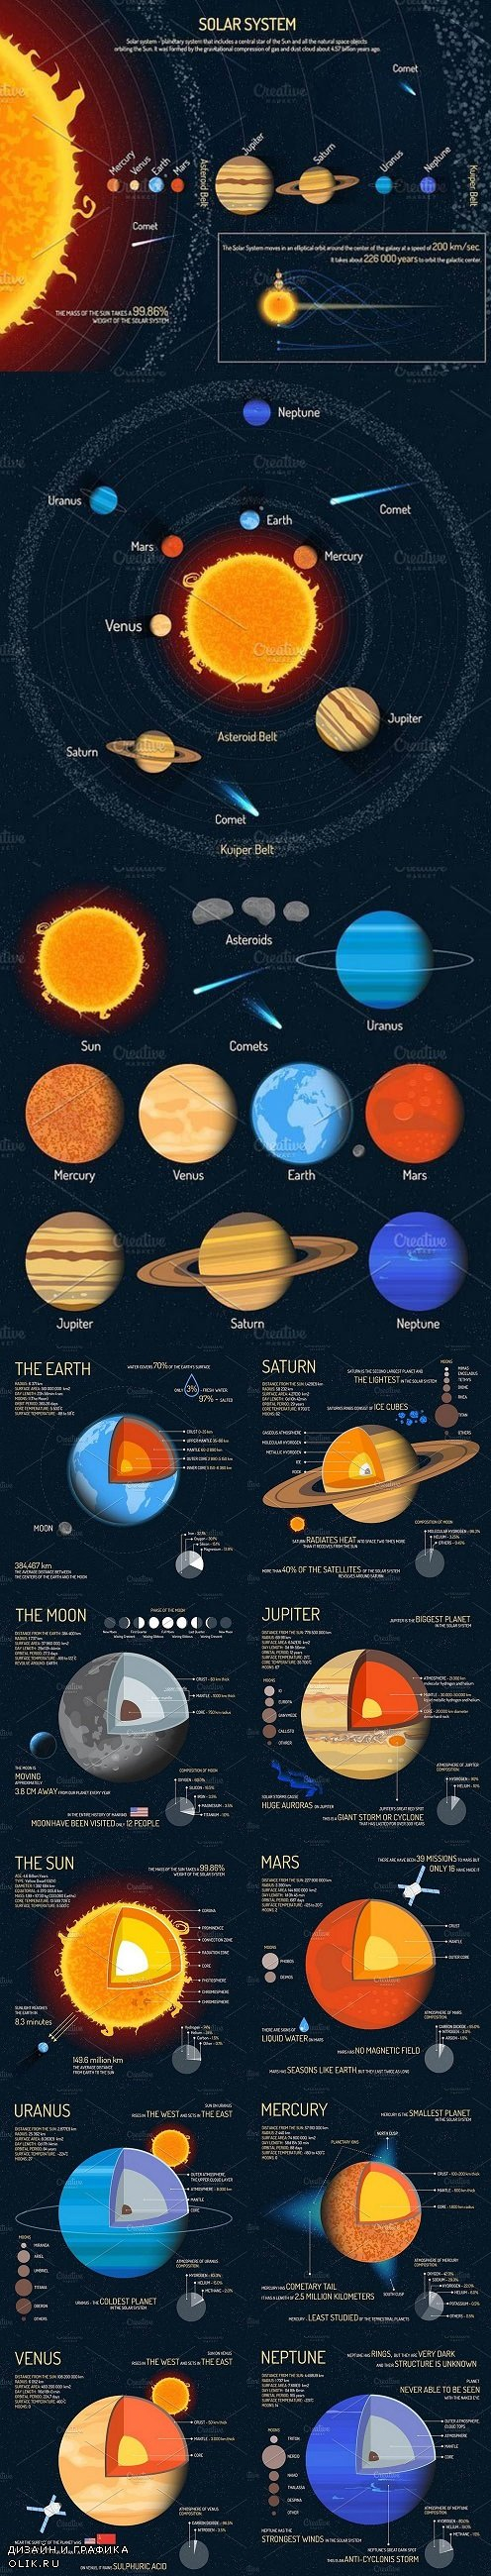 Solar system planets. Posters set 1458105